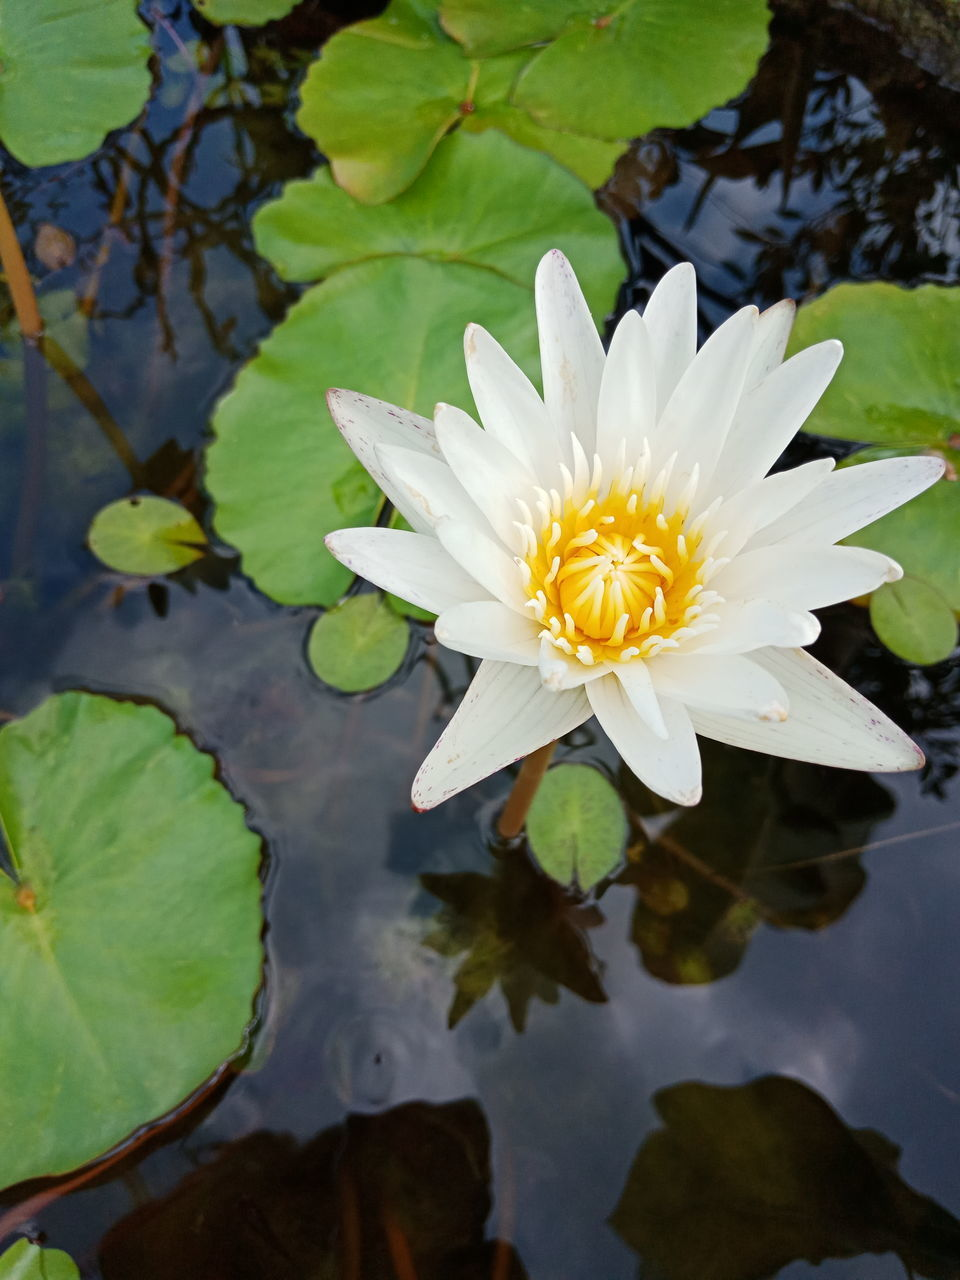 flower, plant, flowering plant, lake, leaf, water lily, beauty in nature, water, freshness, growth, plant part, fragility, vulnerability, petal, floating, floating on water, nature, flower head, lotus water lily, pollen, no people, outdoors